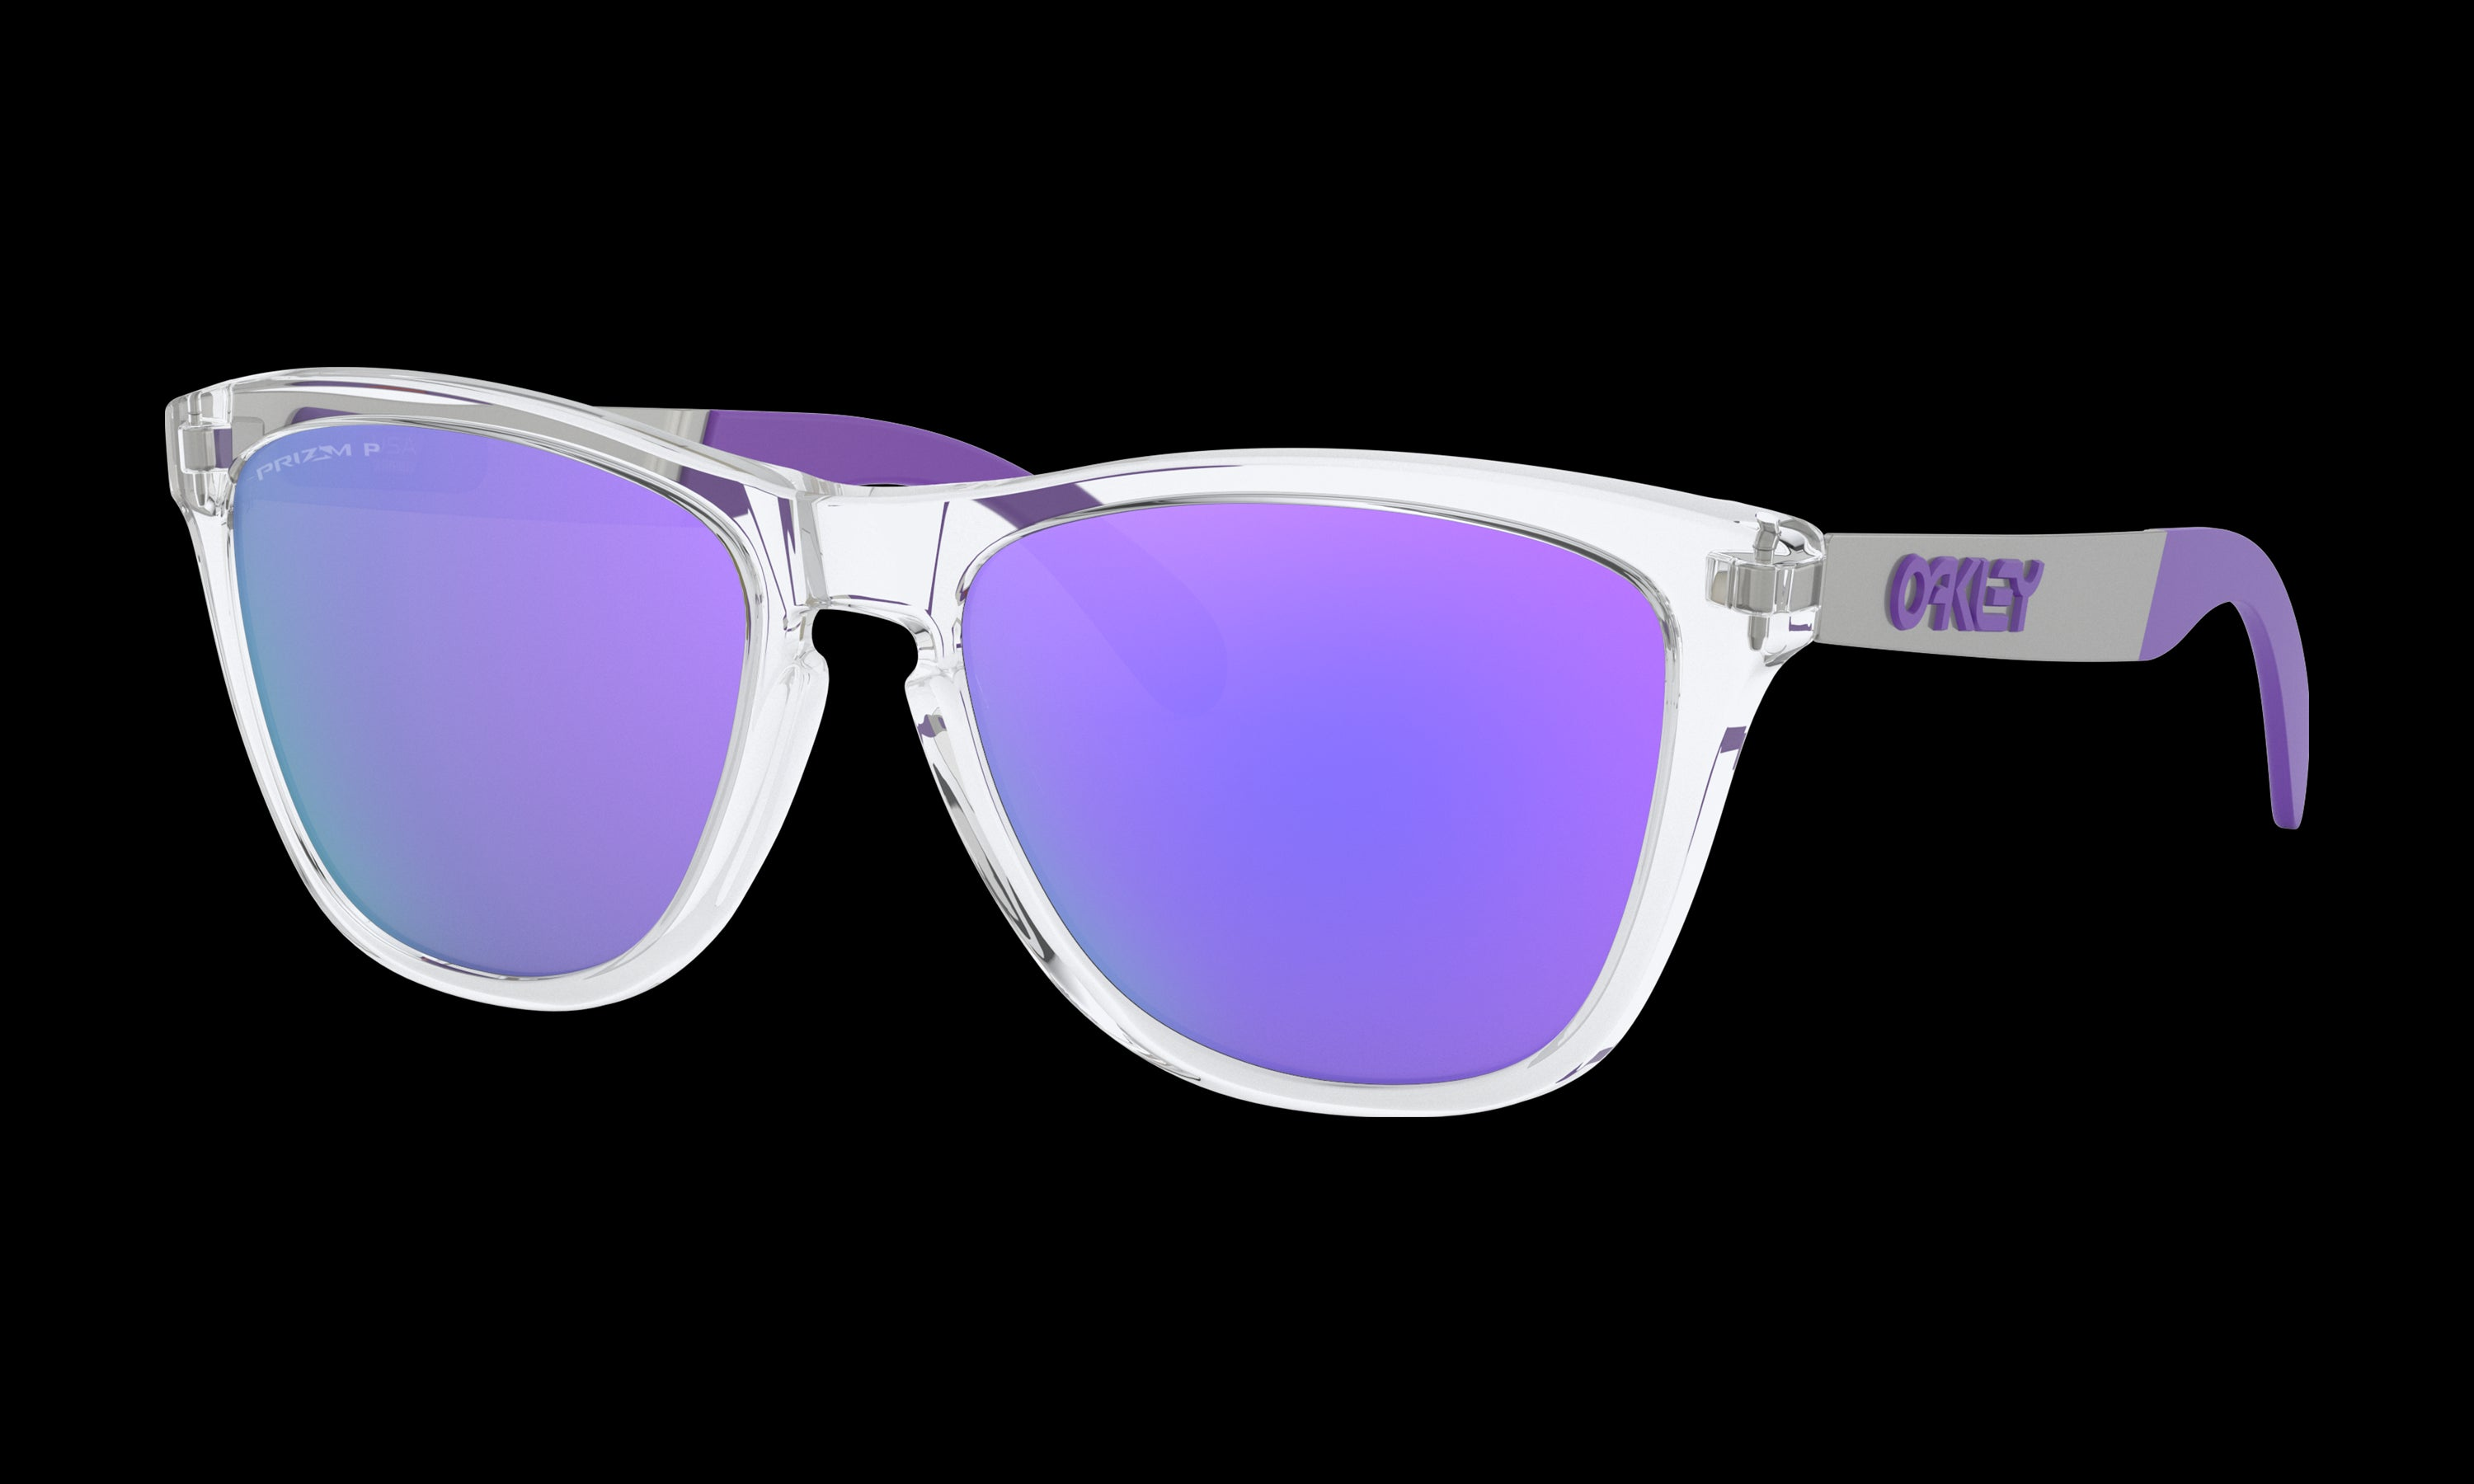 Women's Oakley Frogskins Mix Sunglasses in Polished Clear Prizm Violet Polarized